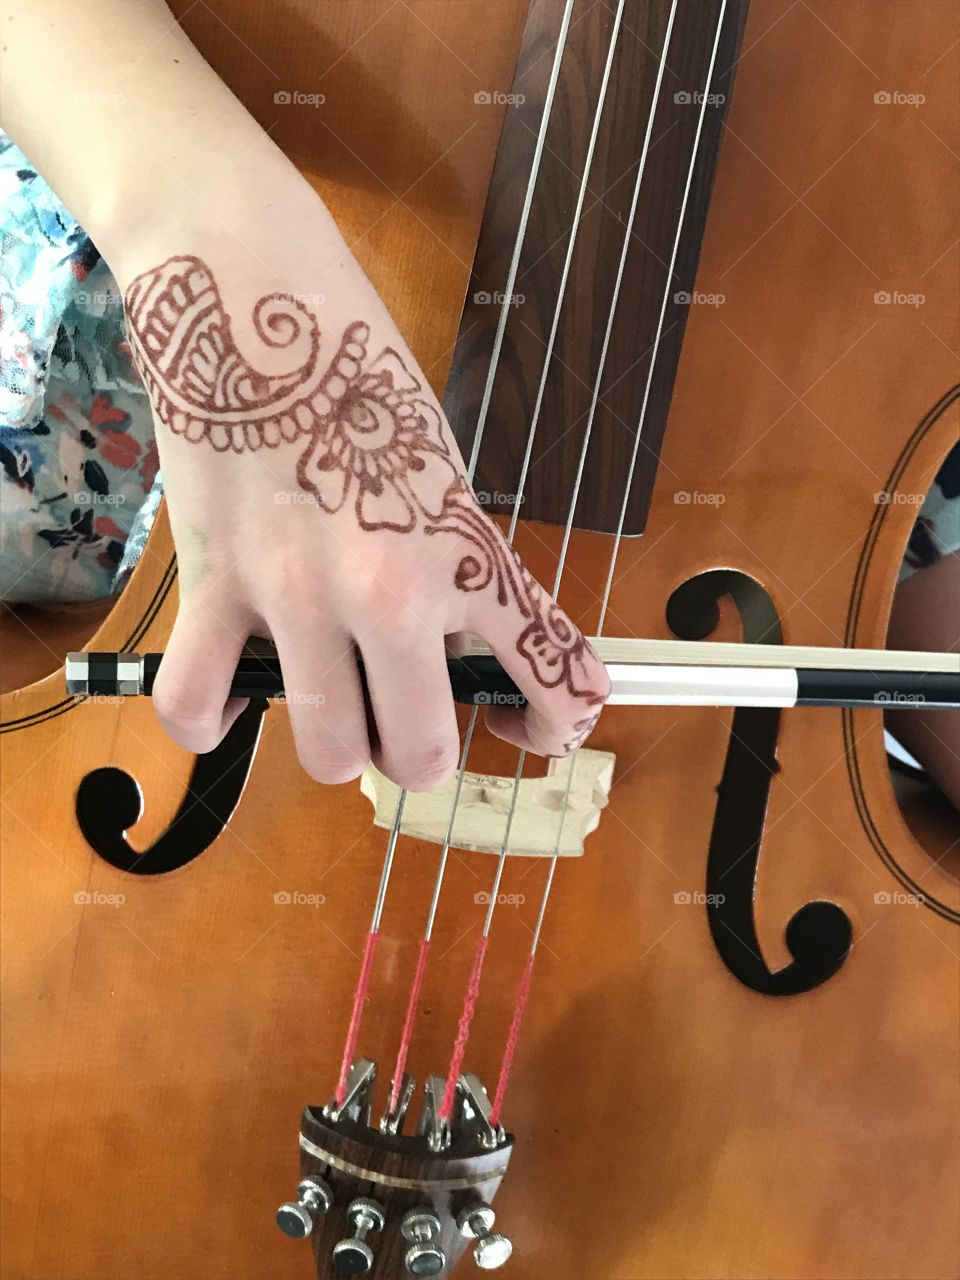 The beauty of music: my amazing pre-teen daughter was practicing her cello for an audition today and the beauty of her hand with the flowery details of henna tattoo set against the slick, smooth lines of the bow and body of the cello struck me as needing to be photographed and shared. Enjoy!